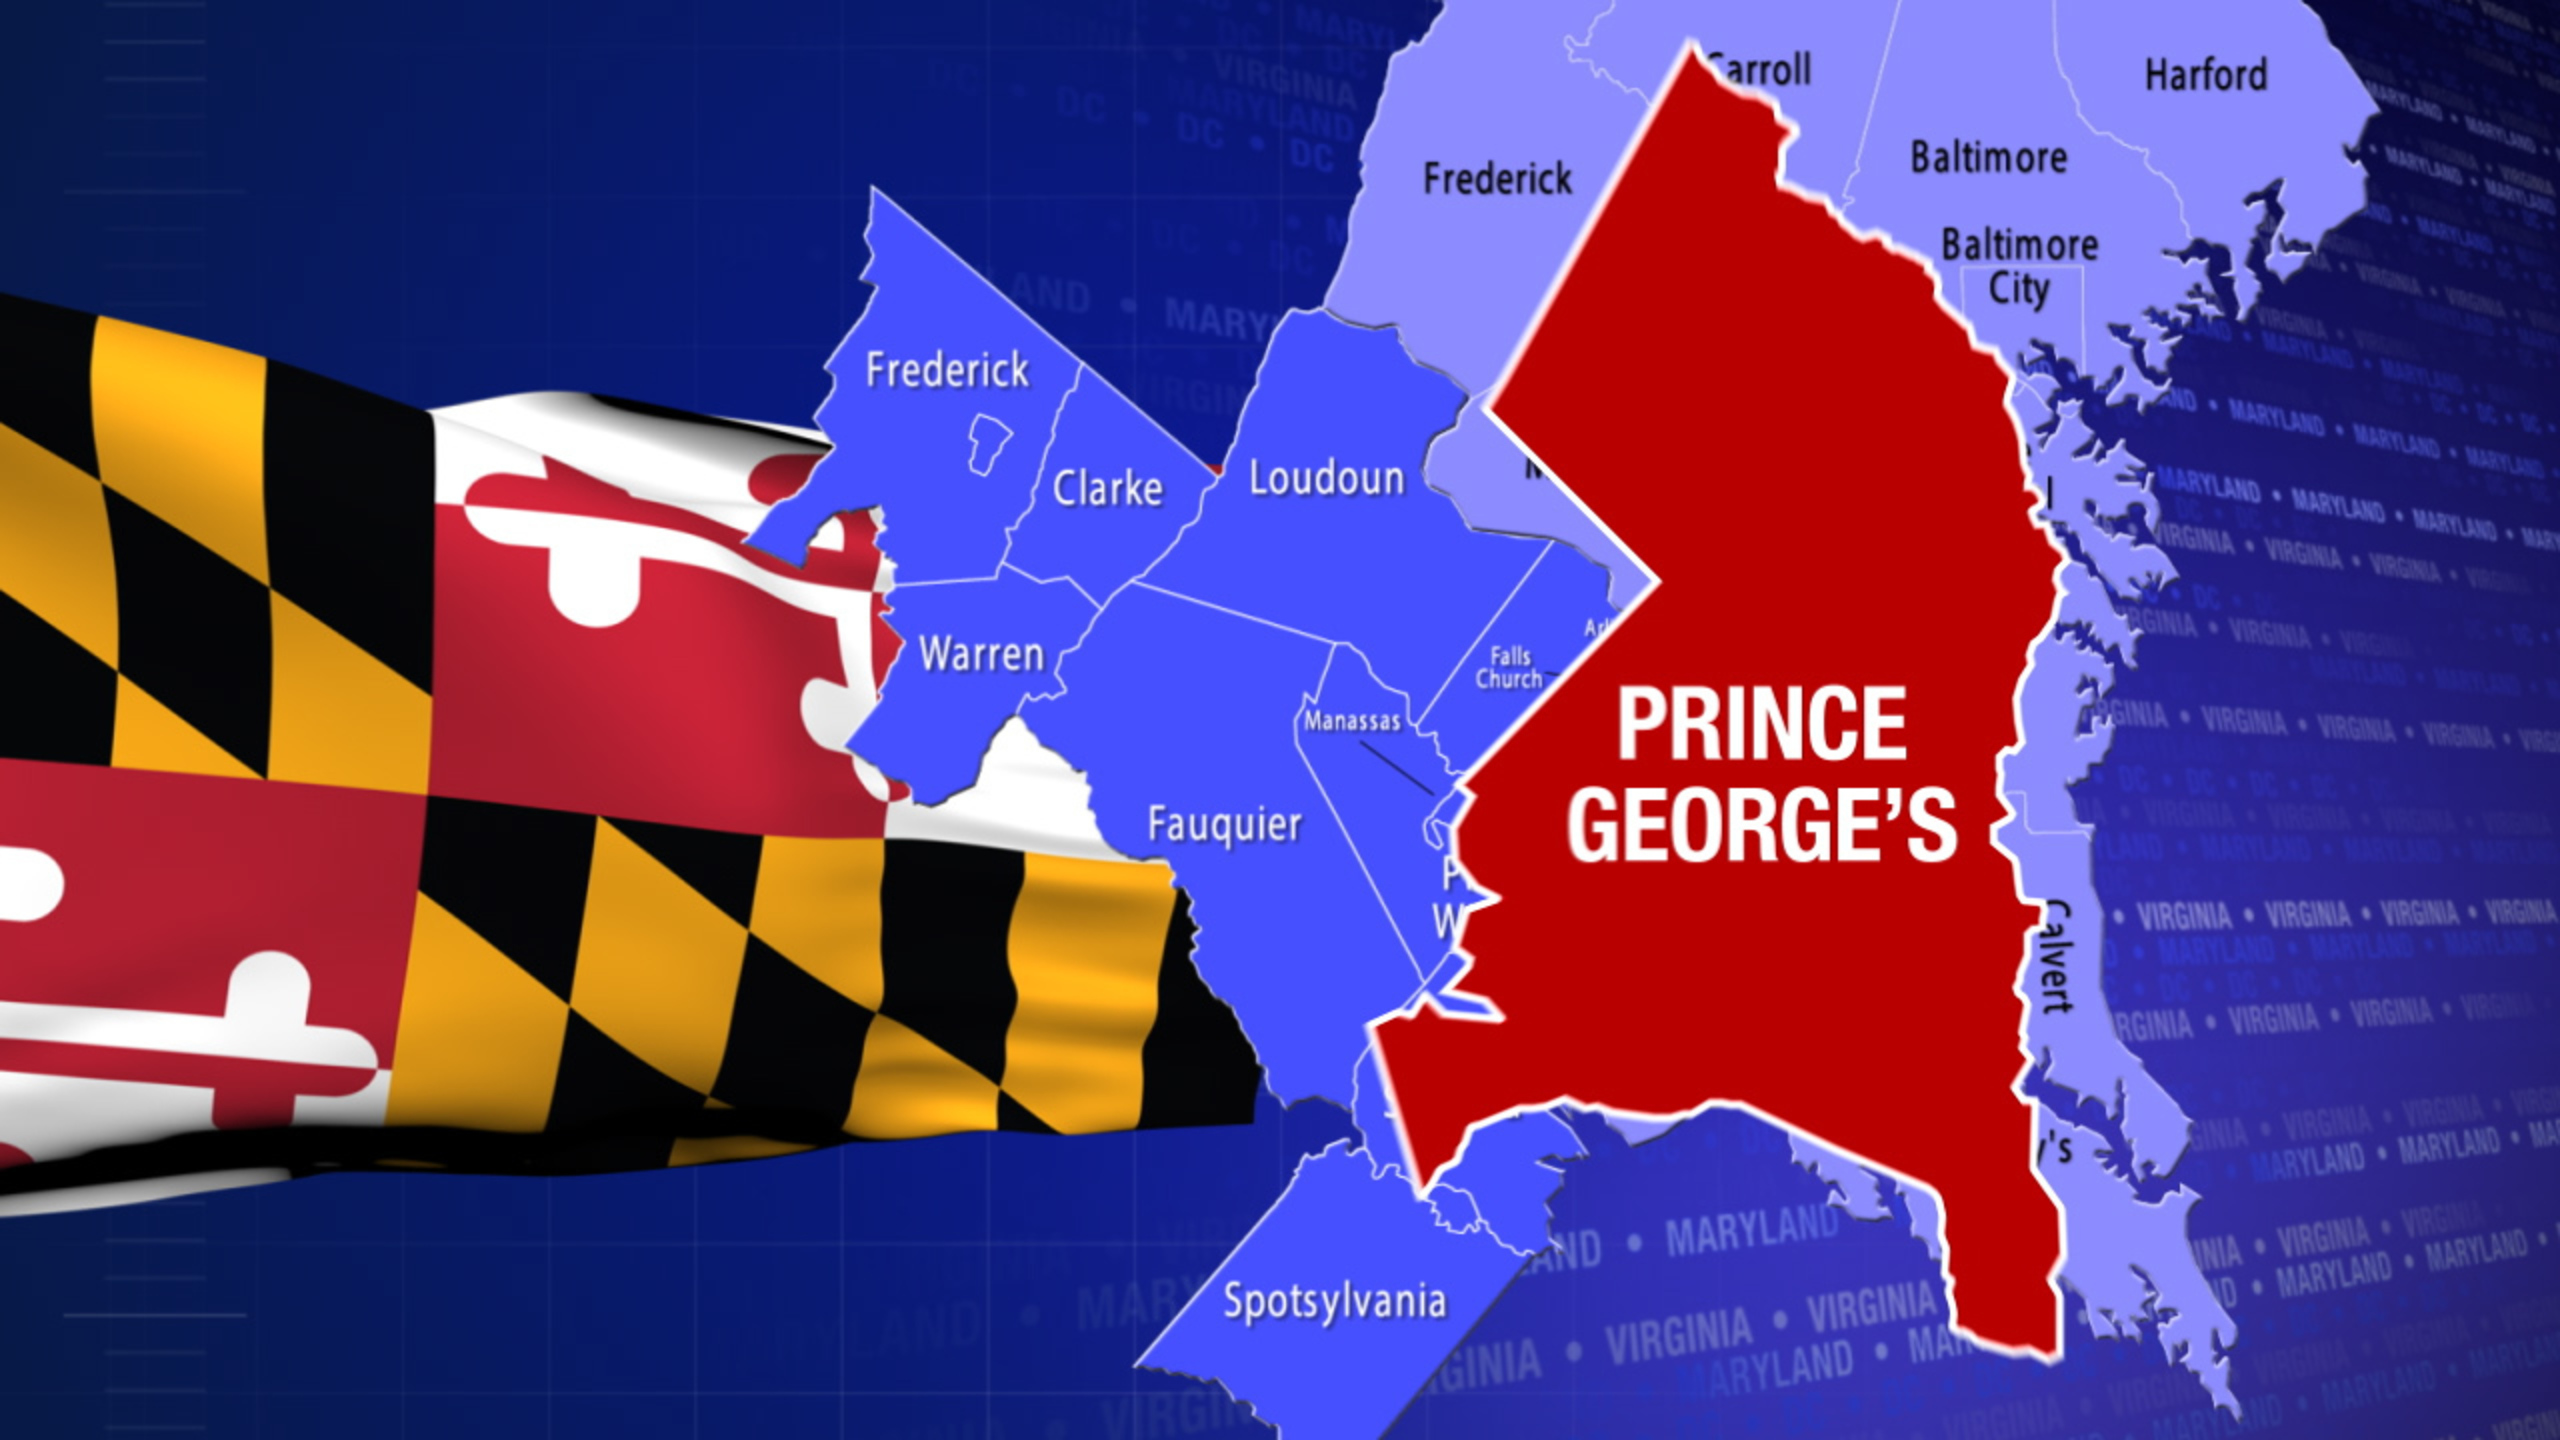 Prince George's County replaces Columbus Day with Native American Day